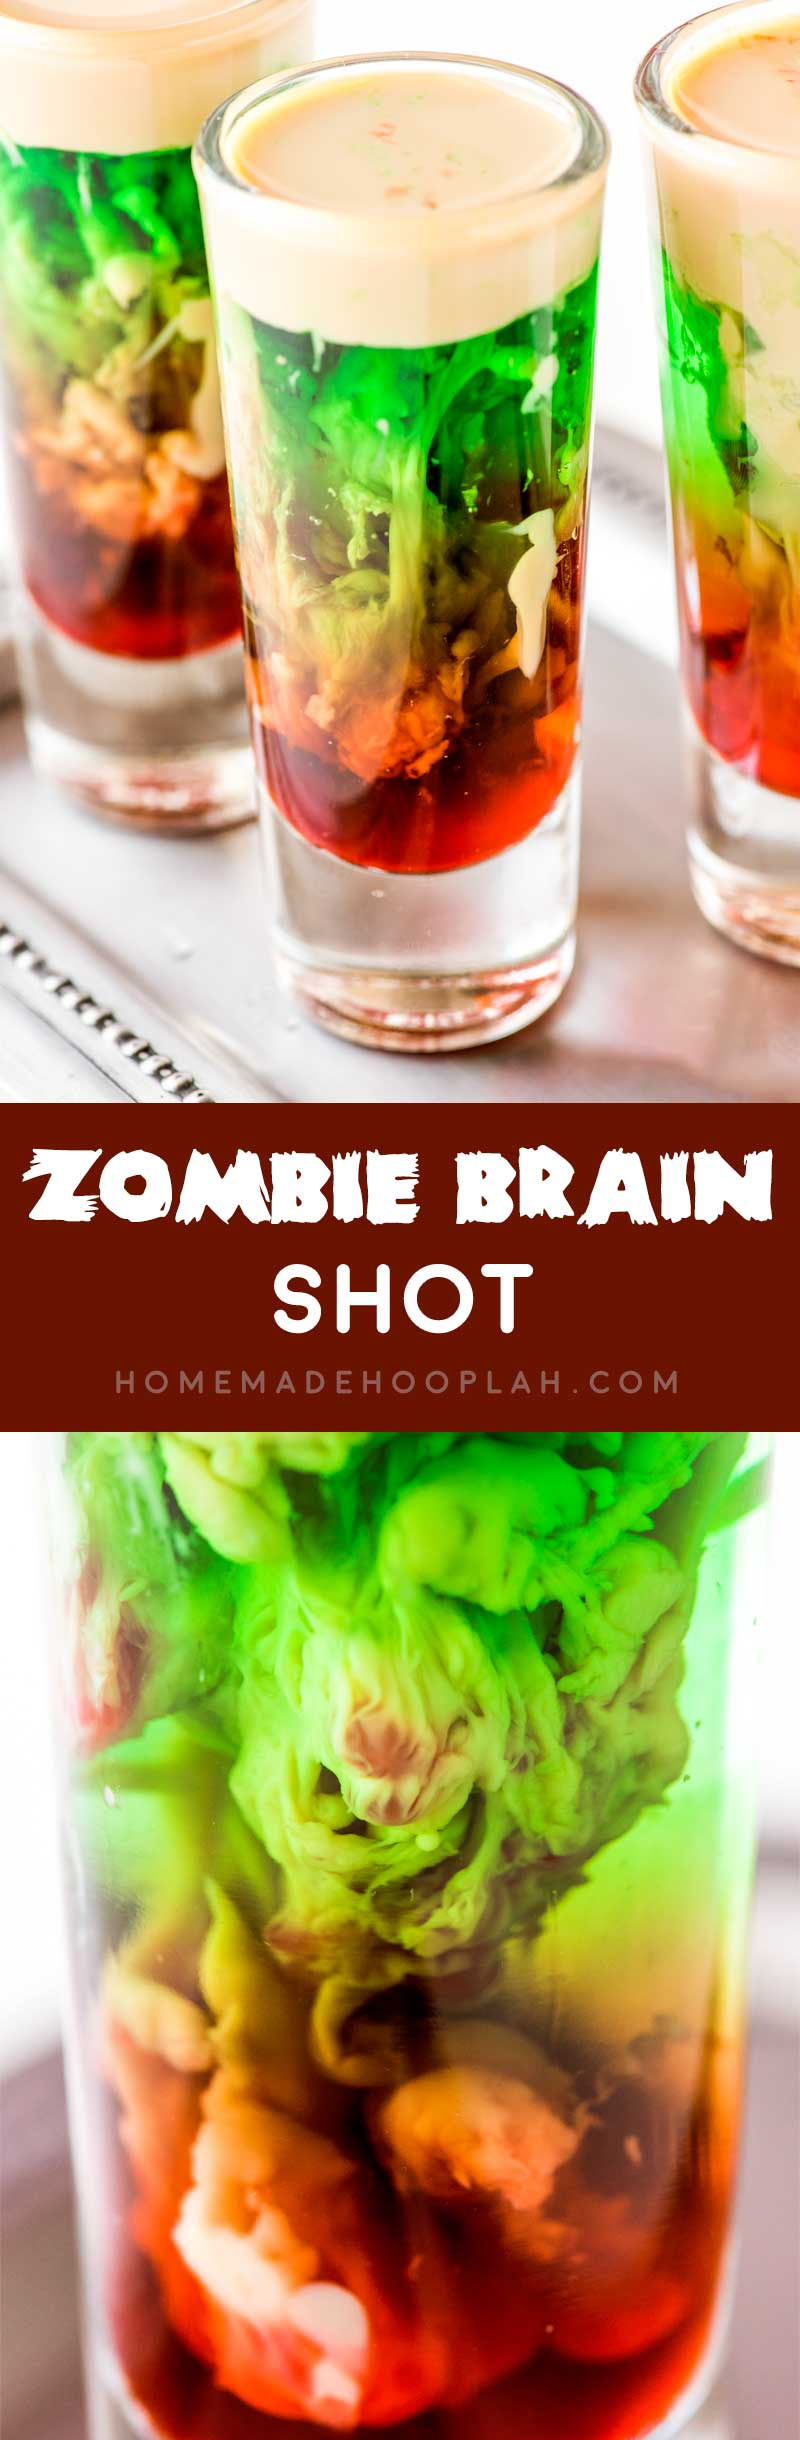 Zombie Brain Shot! This totally creepy and absolutely cool zombie brain shot is the ultimate Halloween drink. And it's as fun to make as it is to shoot - if you dare! | HomemadeHooplah.com